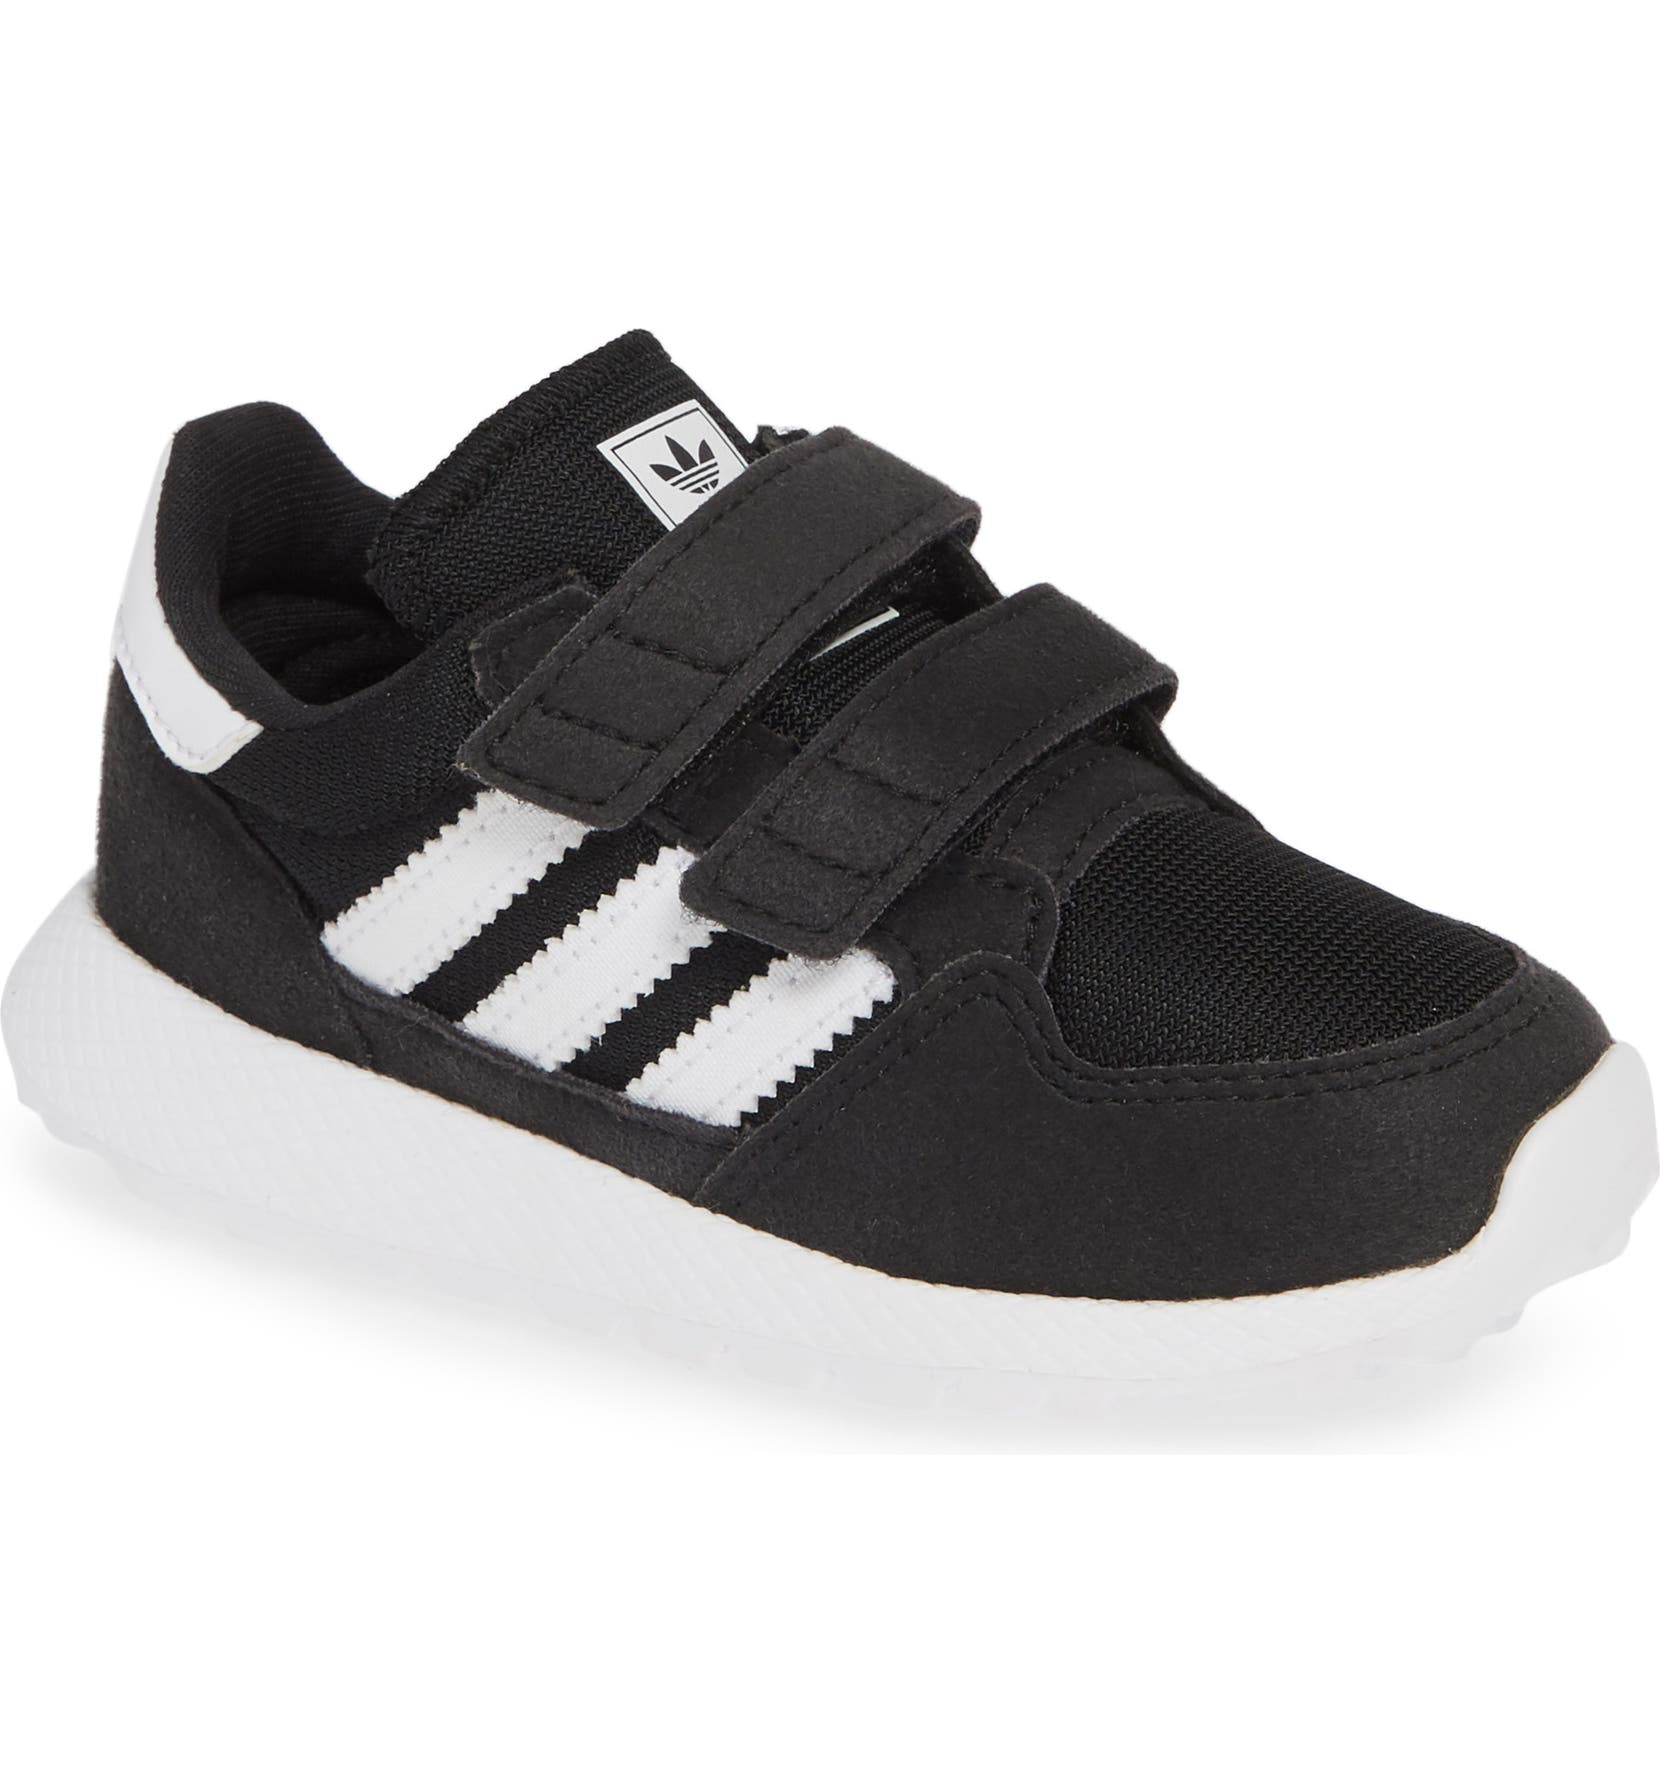 outlet store 2498f 1e73f adidas Forest Grove Sneaker (Baby, Walker, Toddler   Little Kid)   Nordstrom